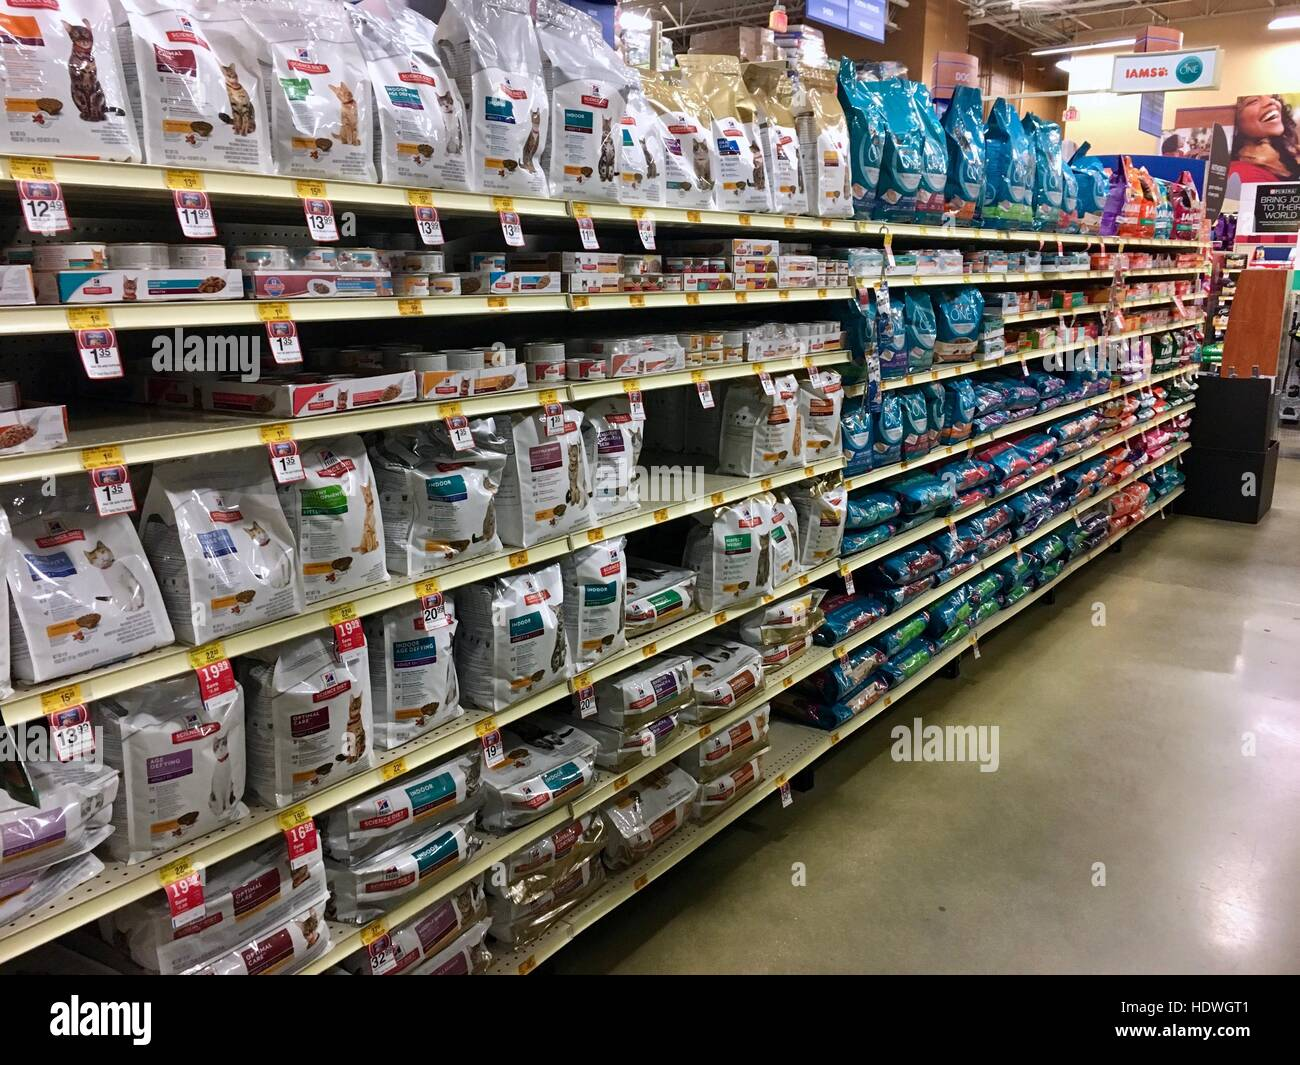 Pet supplies in a Petsmart Stock Photo: 129025121 - Alamy